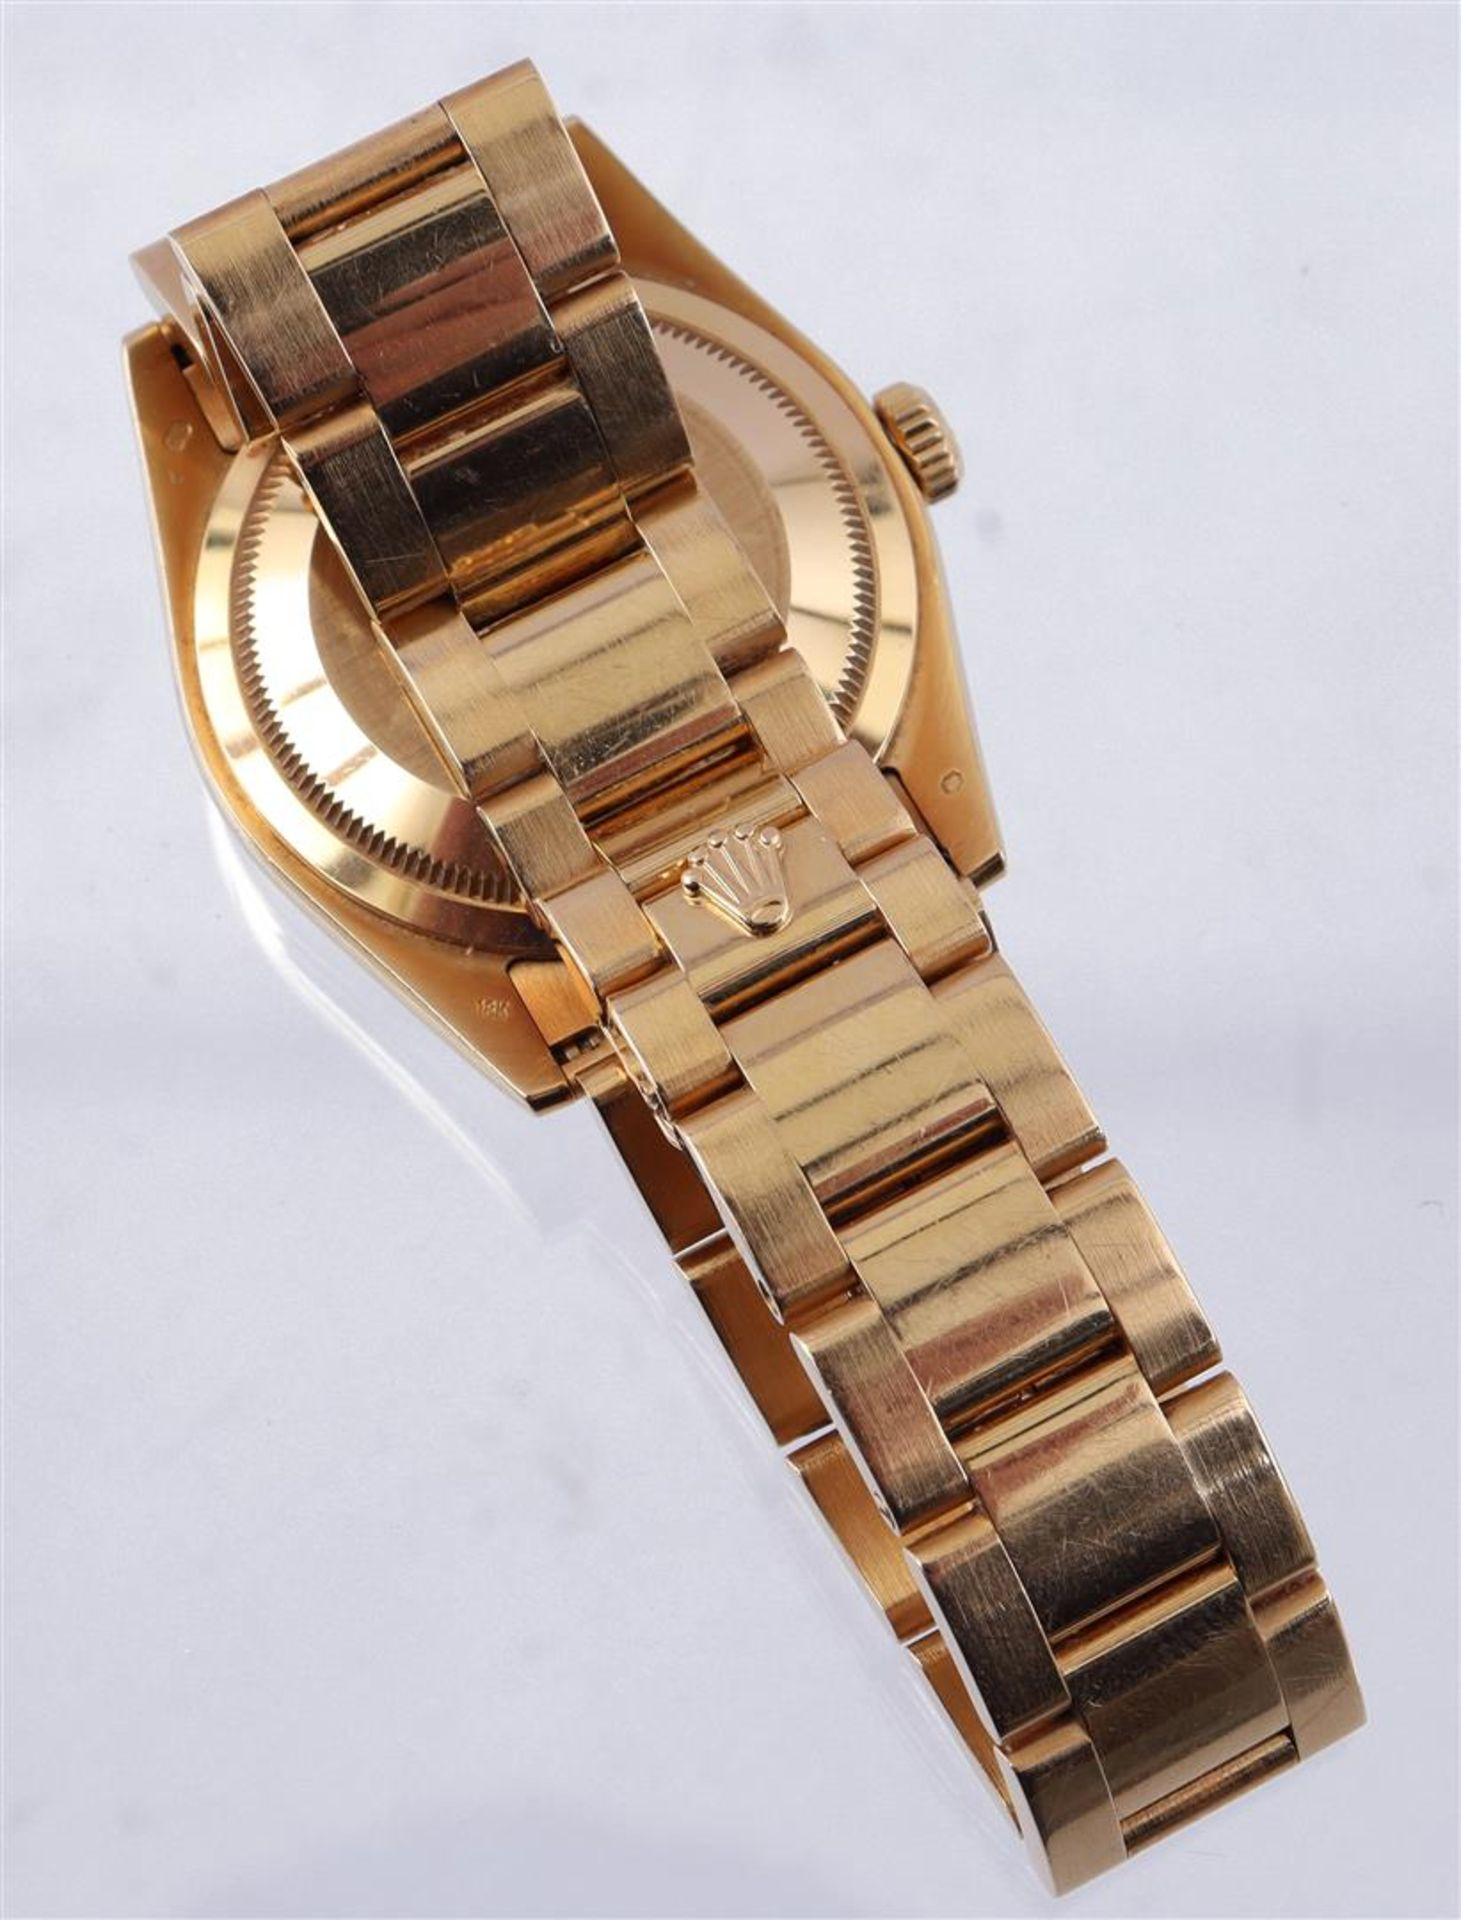 Rolex Oyster Perpetual Day Date men's wristwatch - Image 5 of 5